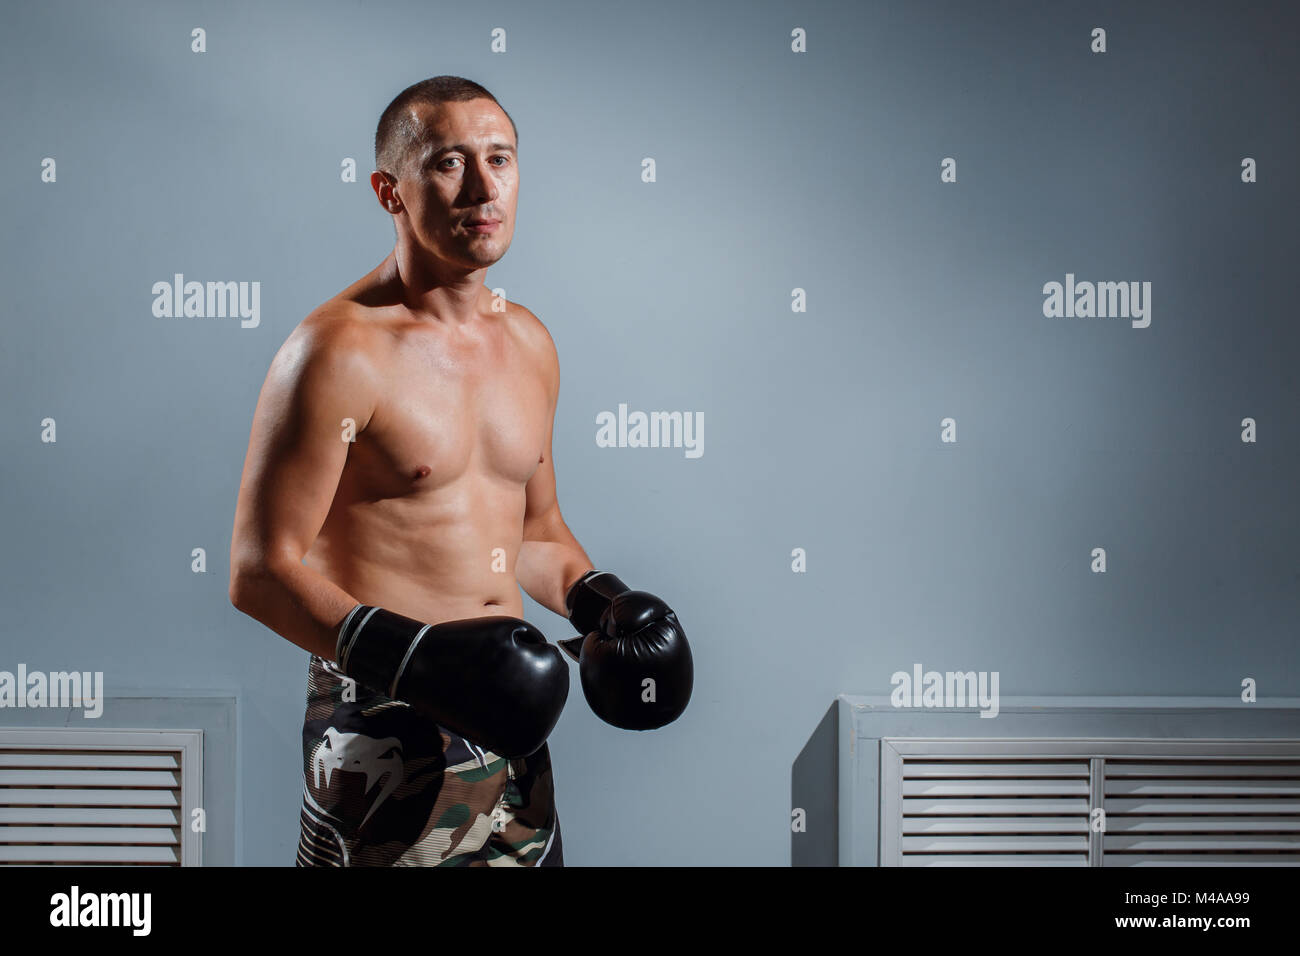 dd286abdcd39 portrait of boxer in Boxing gloves on gray background - Stock Image